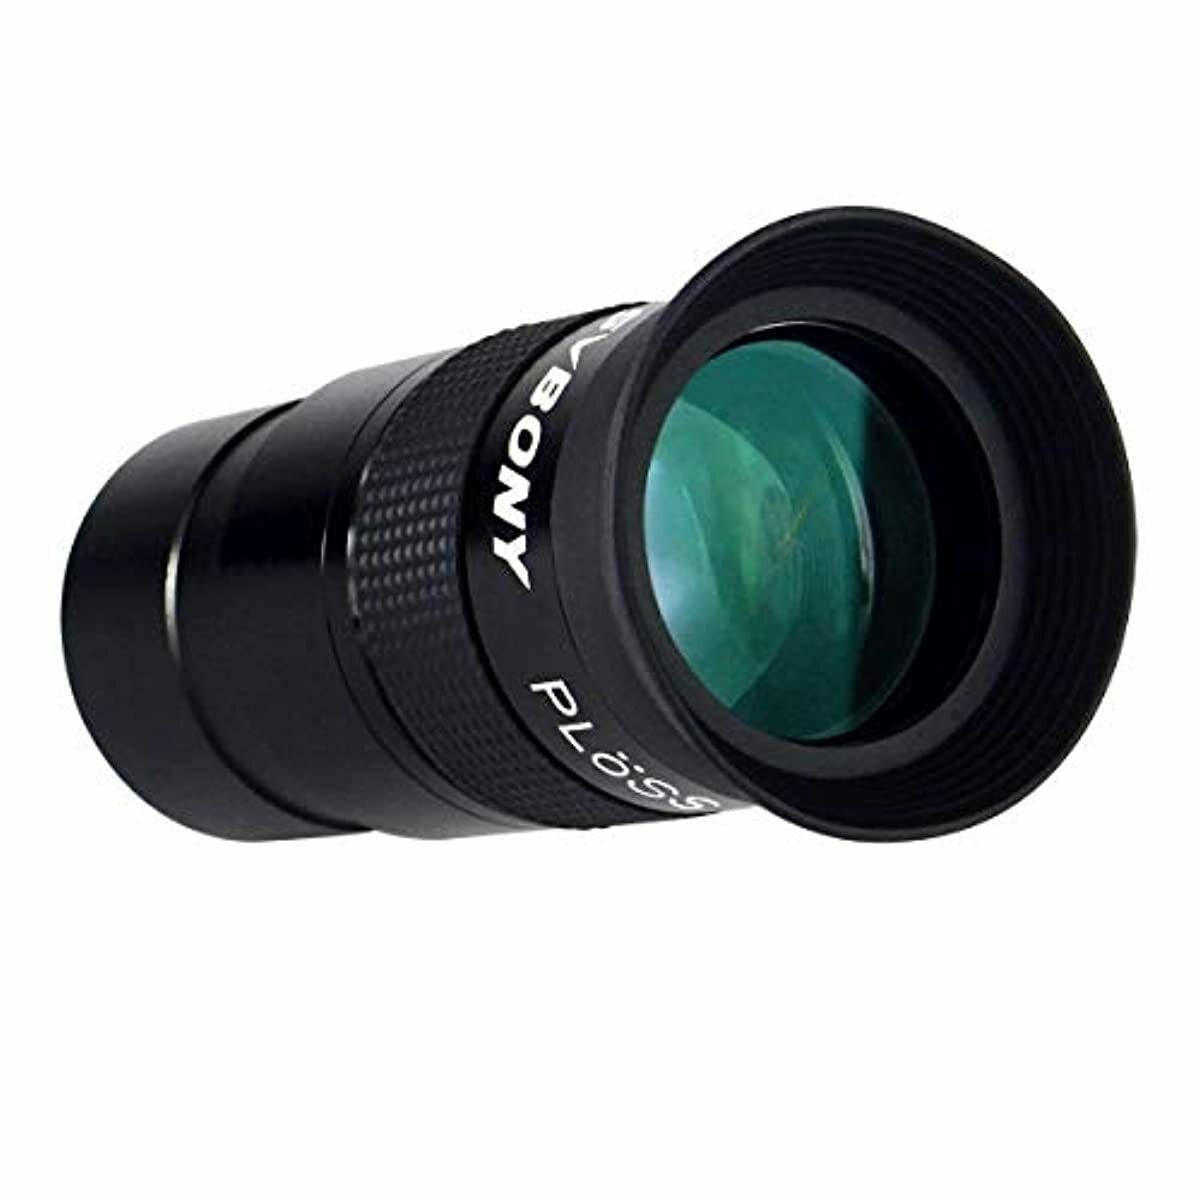 SVBONY 40mm 1.25 inches Plossl Telescope Eyepiece Fully Multi Green Coated Metal